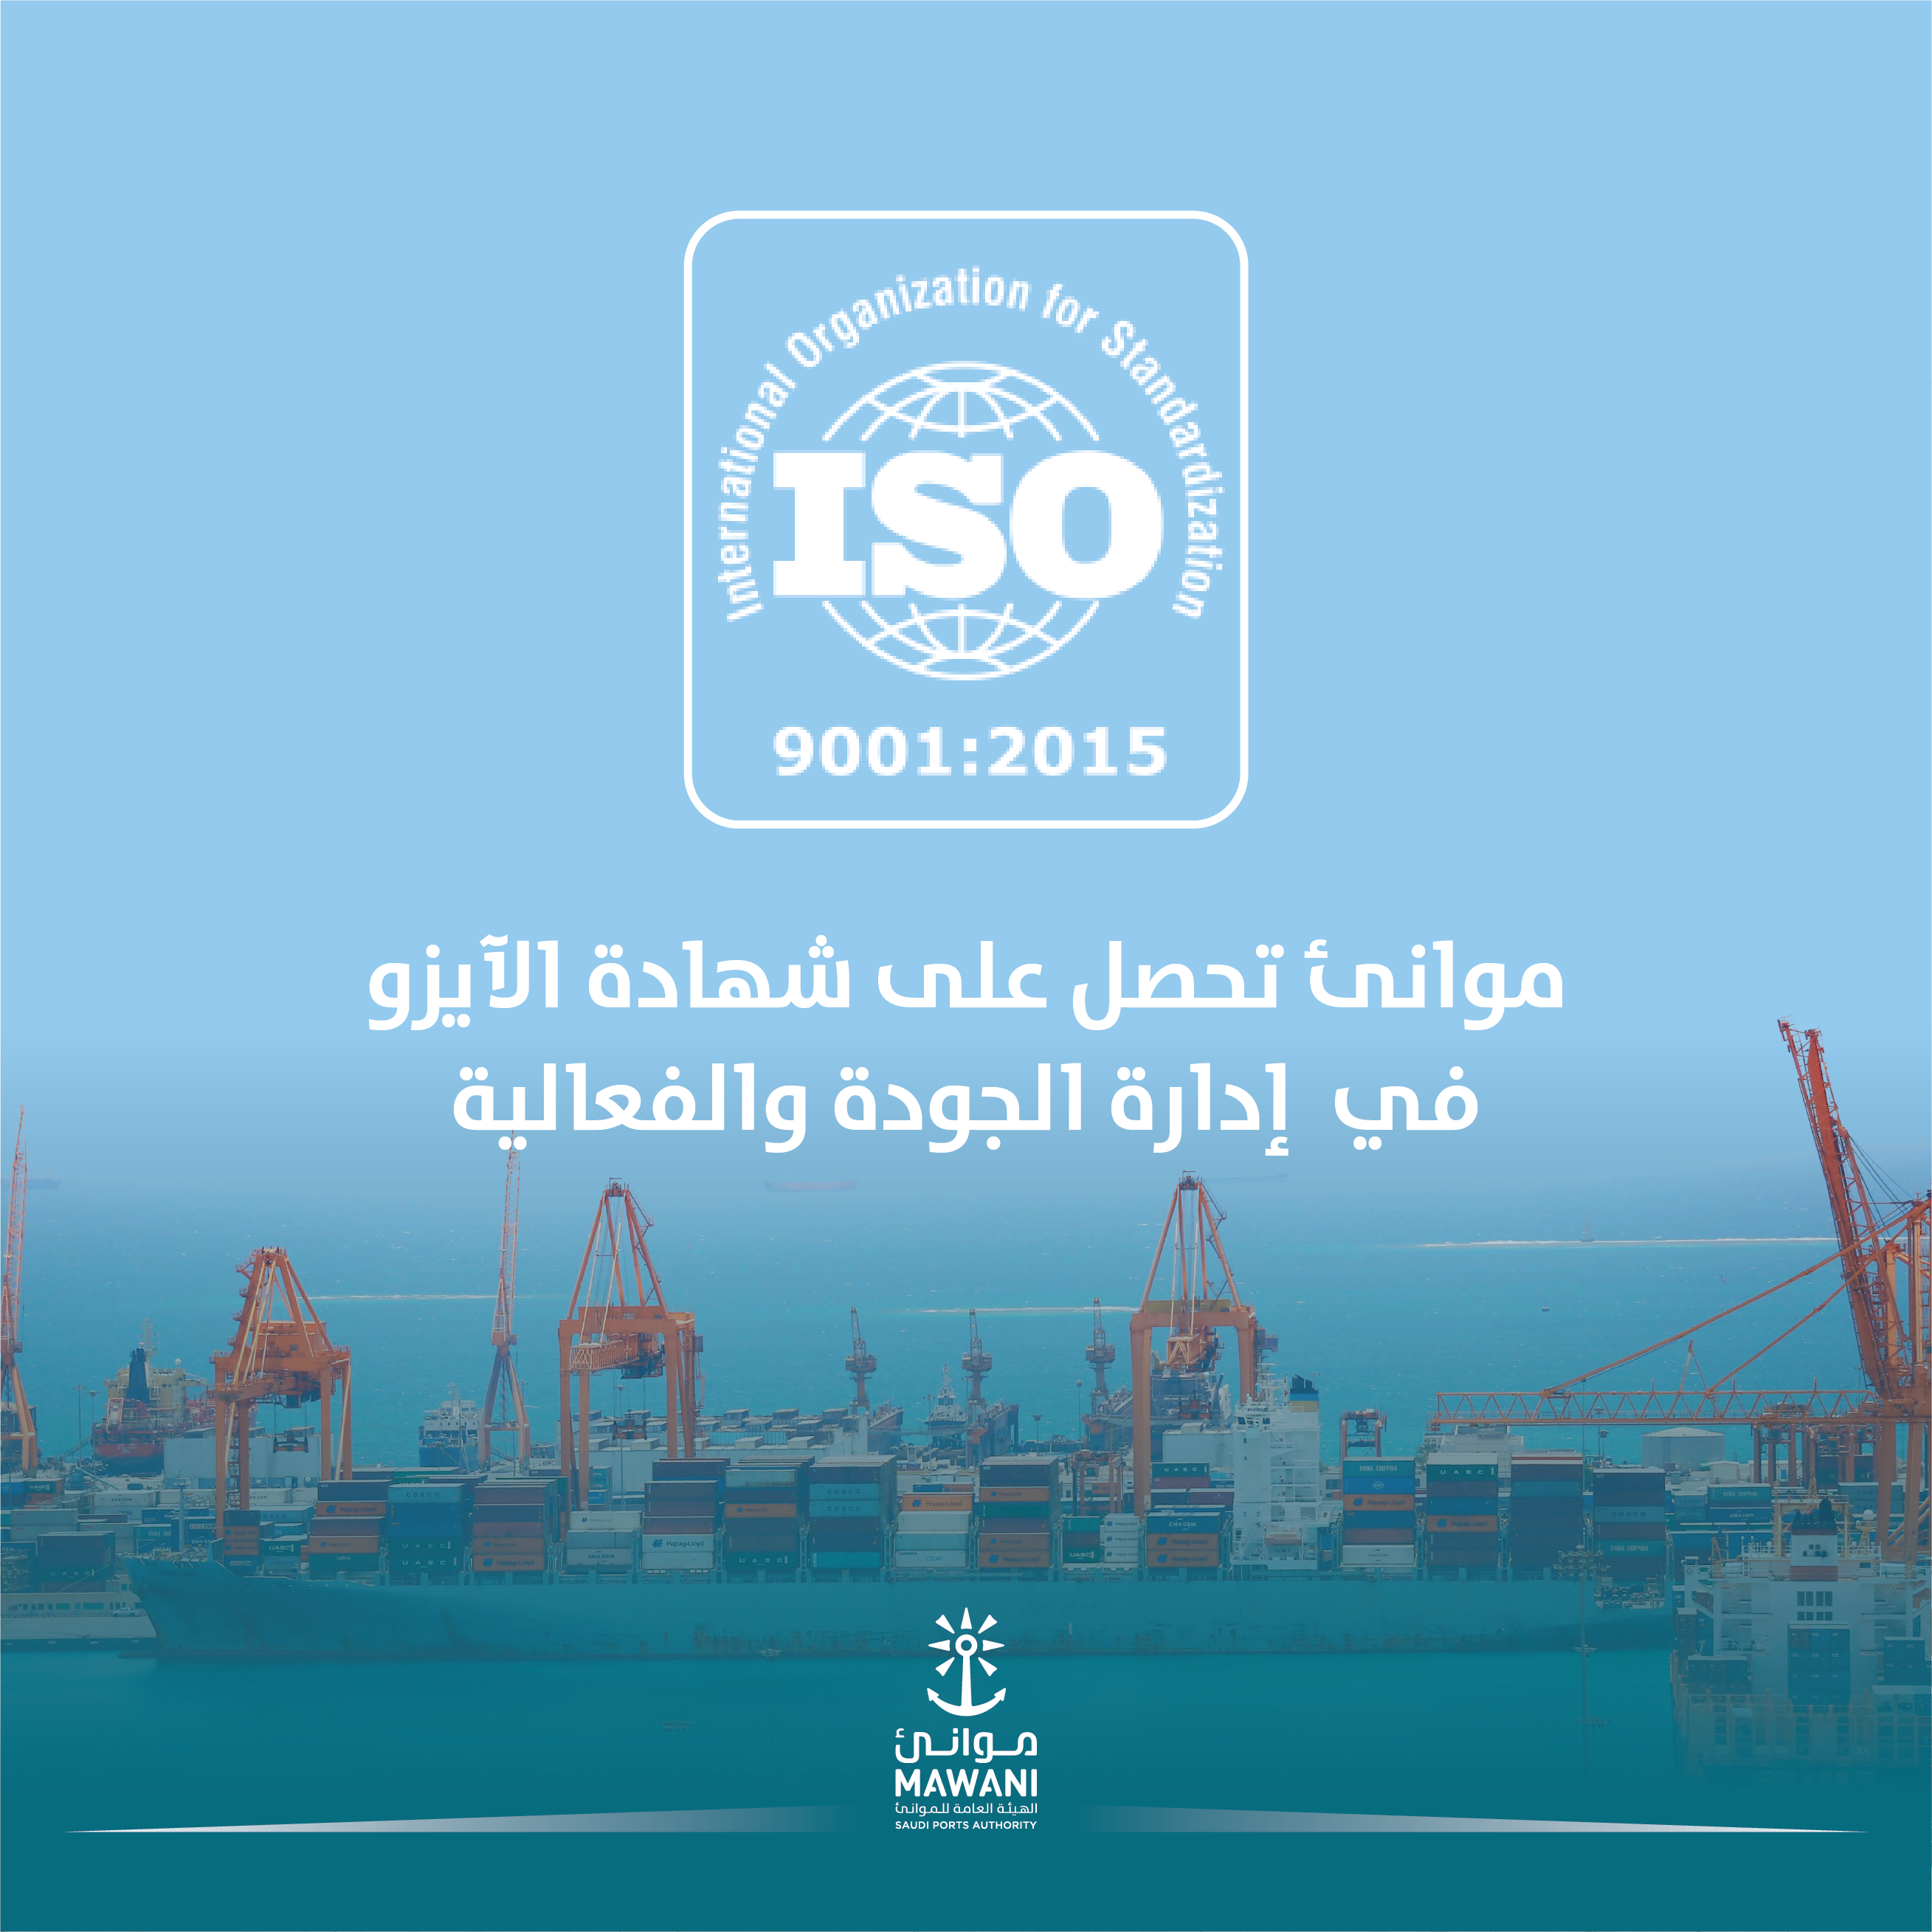 Mawani Obtained ISO Certification in Bussiness Sustainability  (1)-01.png